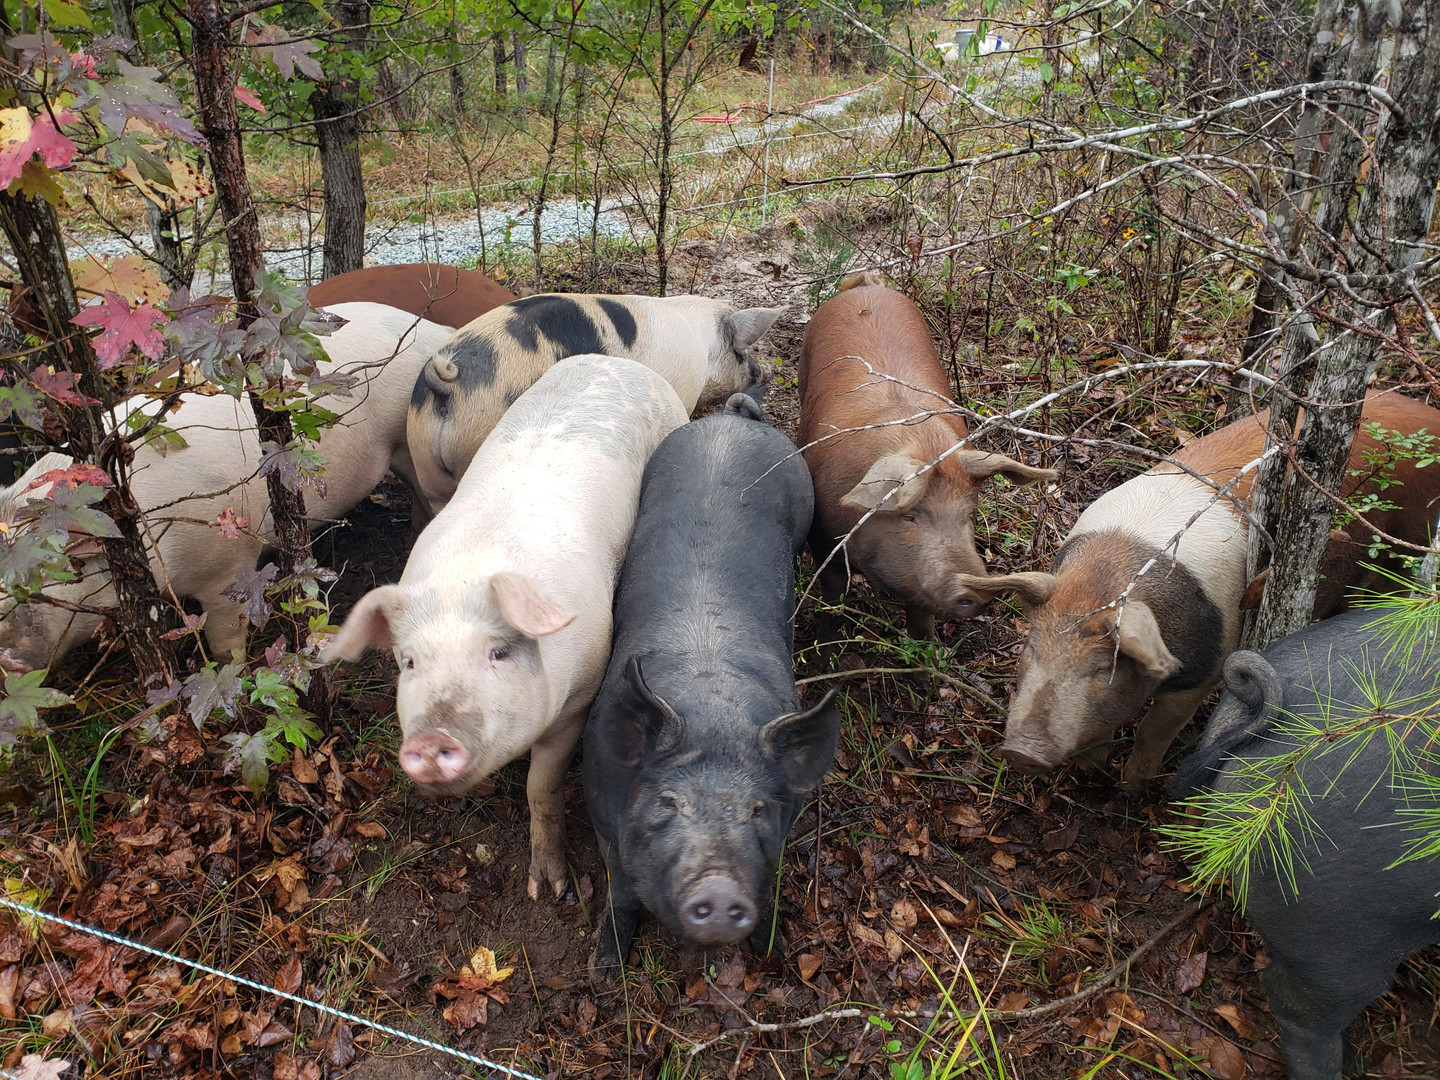 Pigs in the woods!